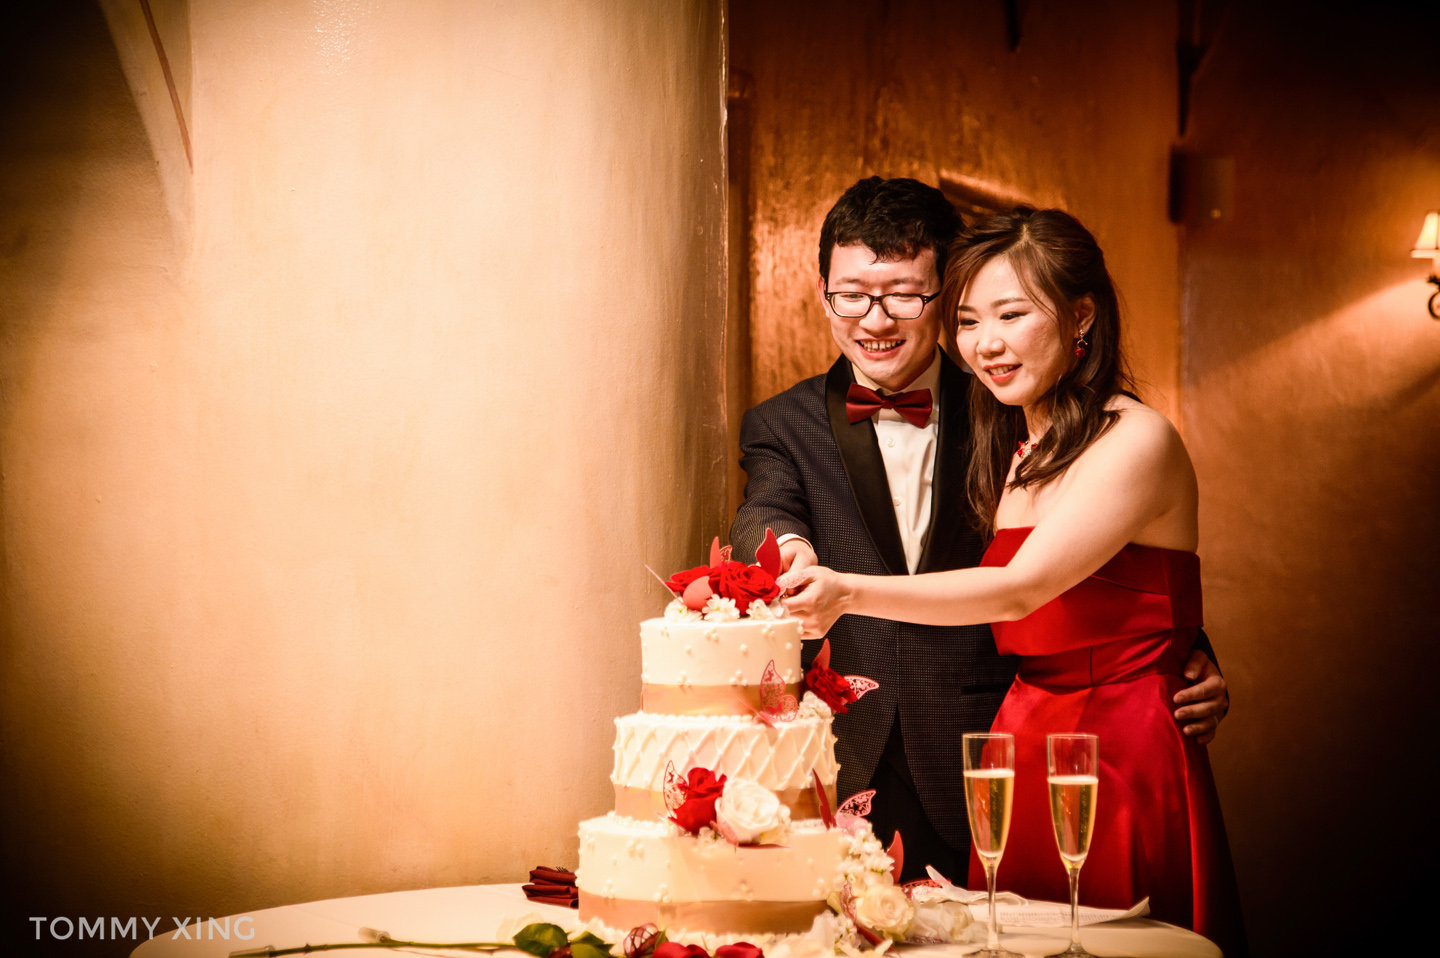 Los Angeles Wedding Photographer 洛杉矶婚礼婚纱摄影师 Tommy Xing-270.JPG